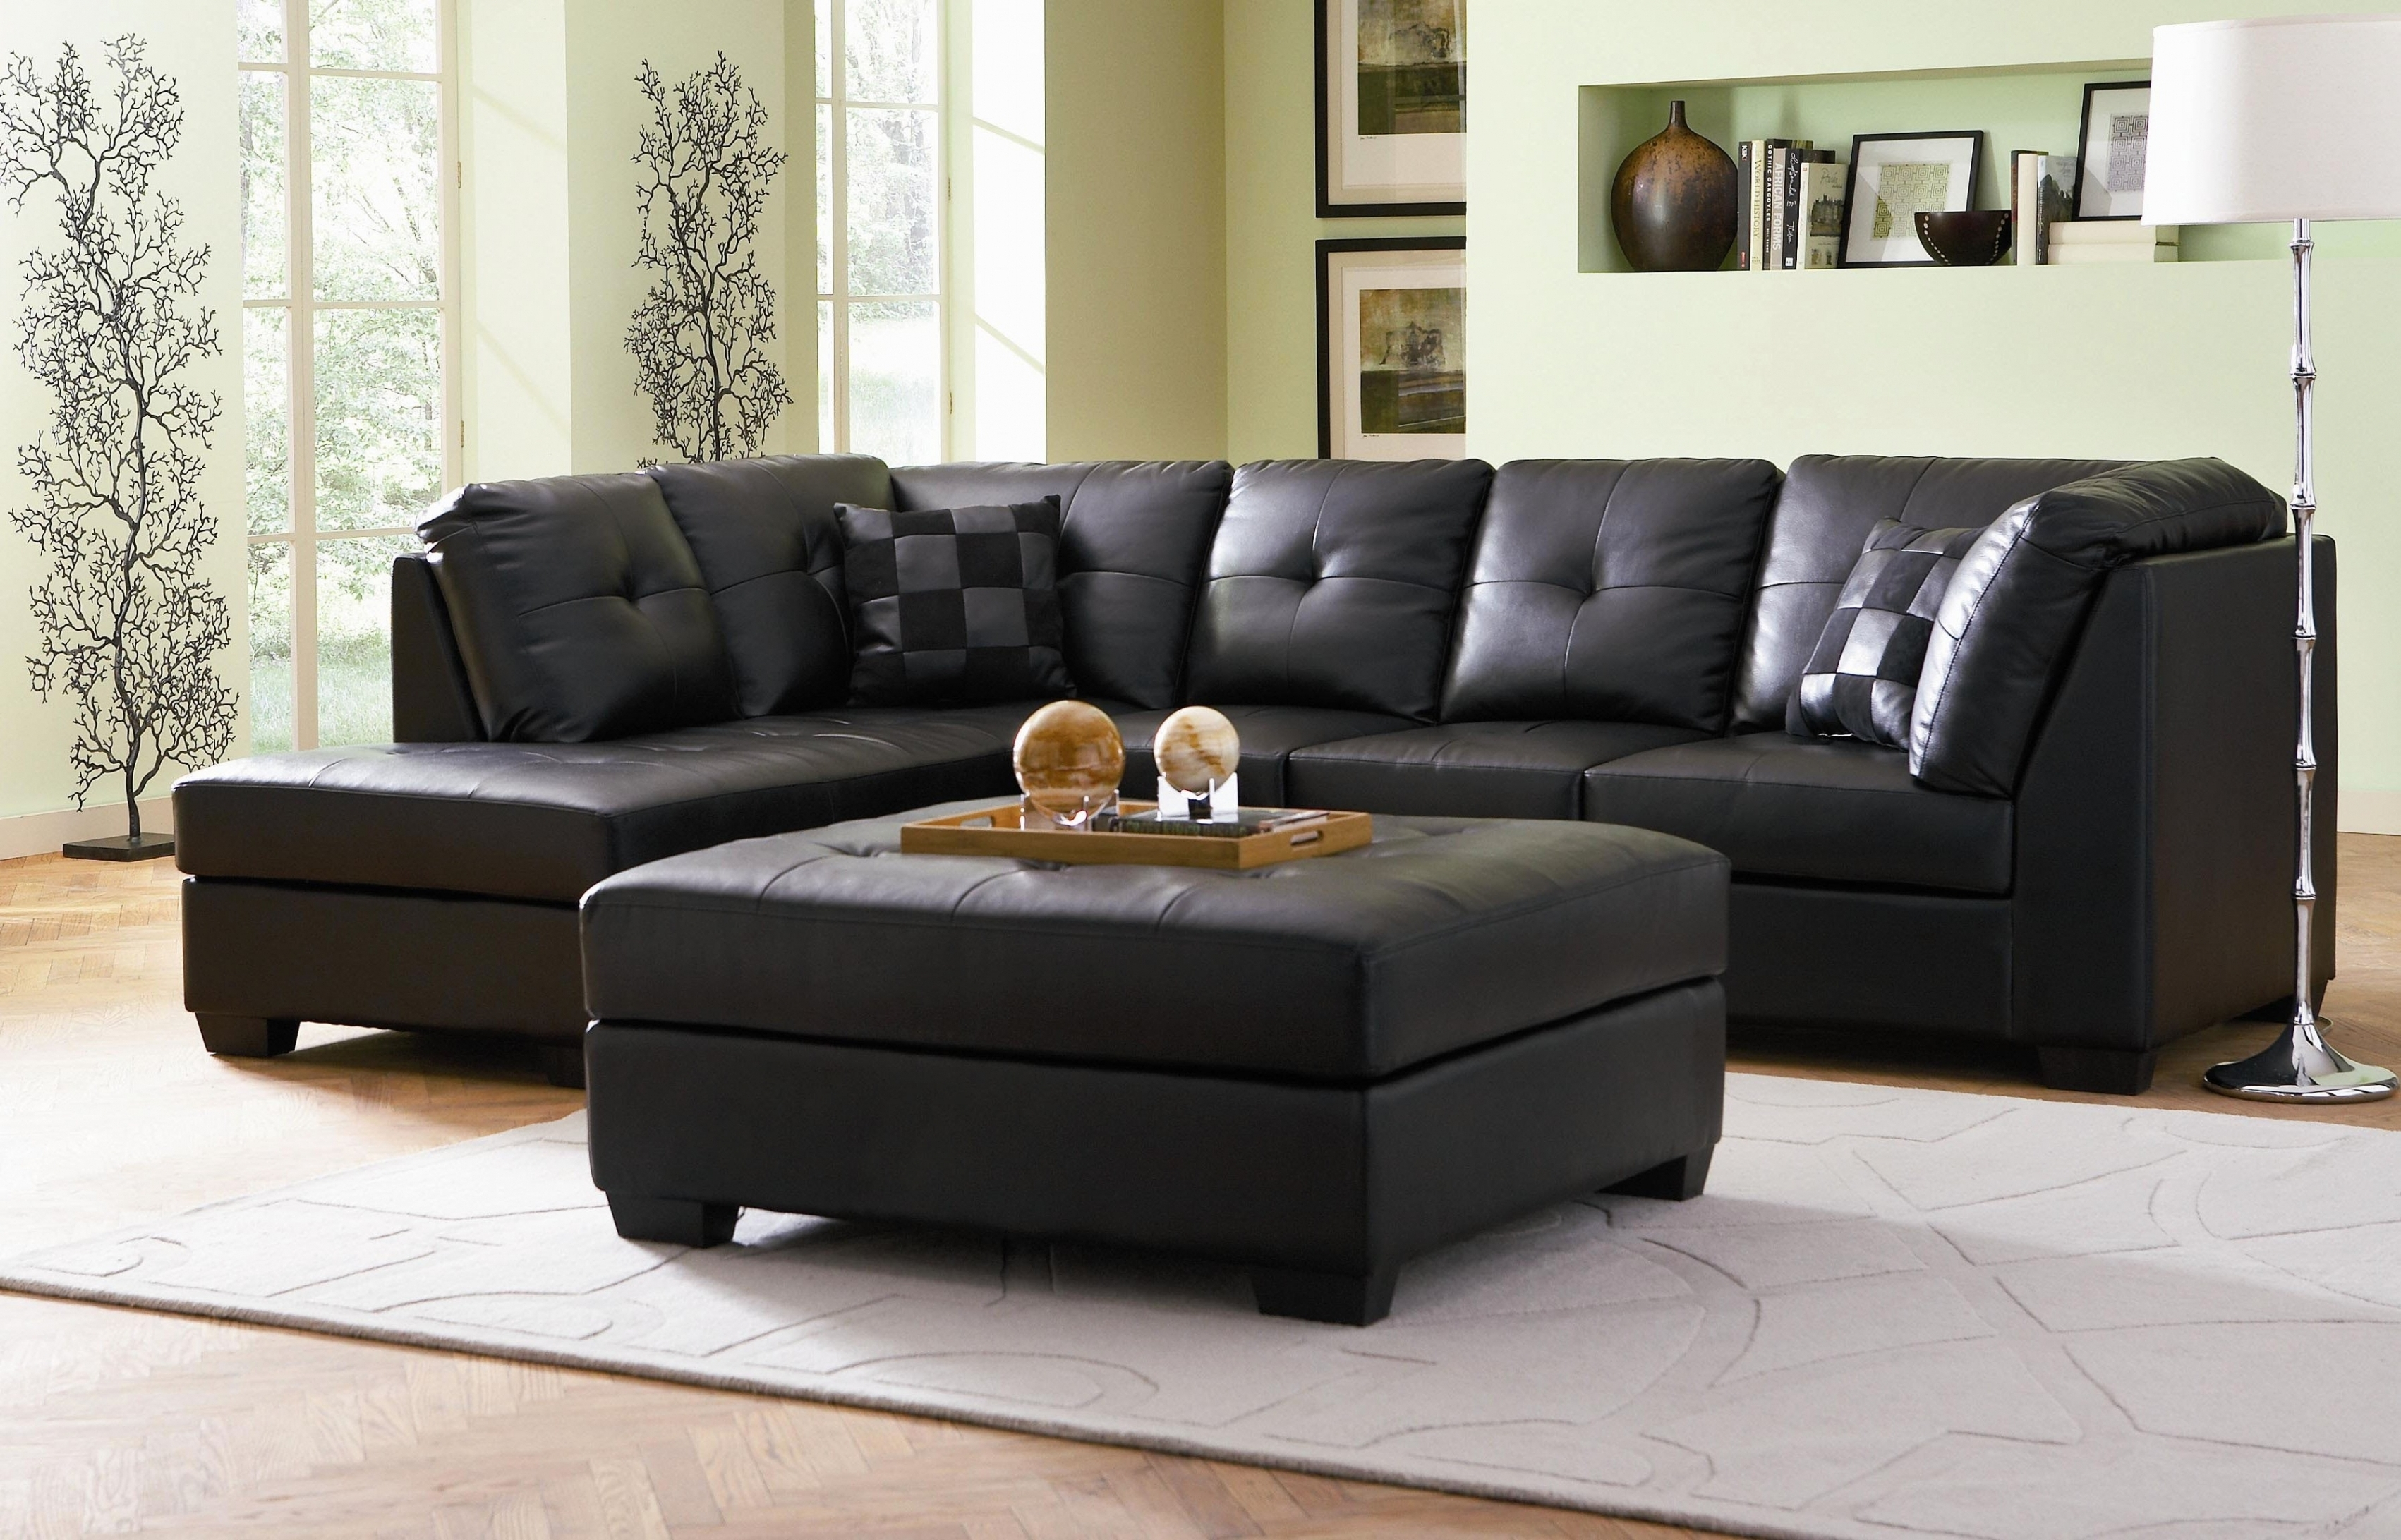 Preferred Furniture: Using Pretty Cheap Sectional Sofas Under 300 For Intended For Sectional Sofas Under  (View 8 of 15)